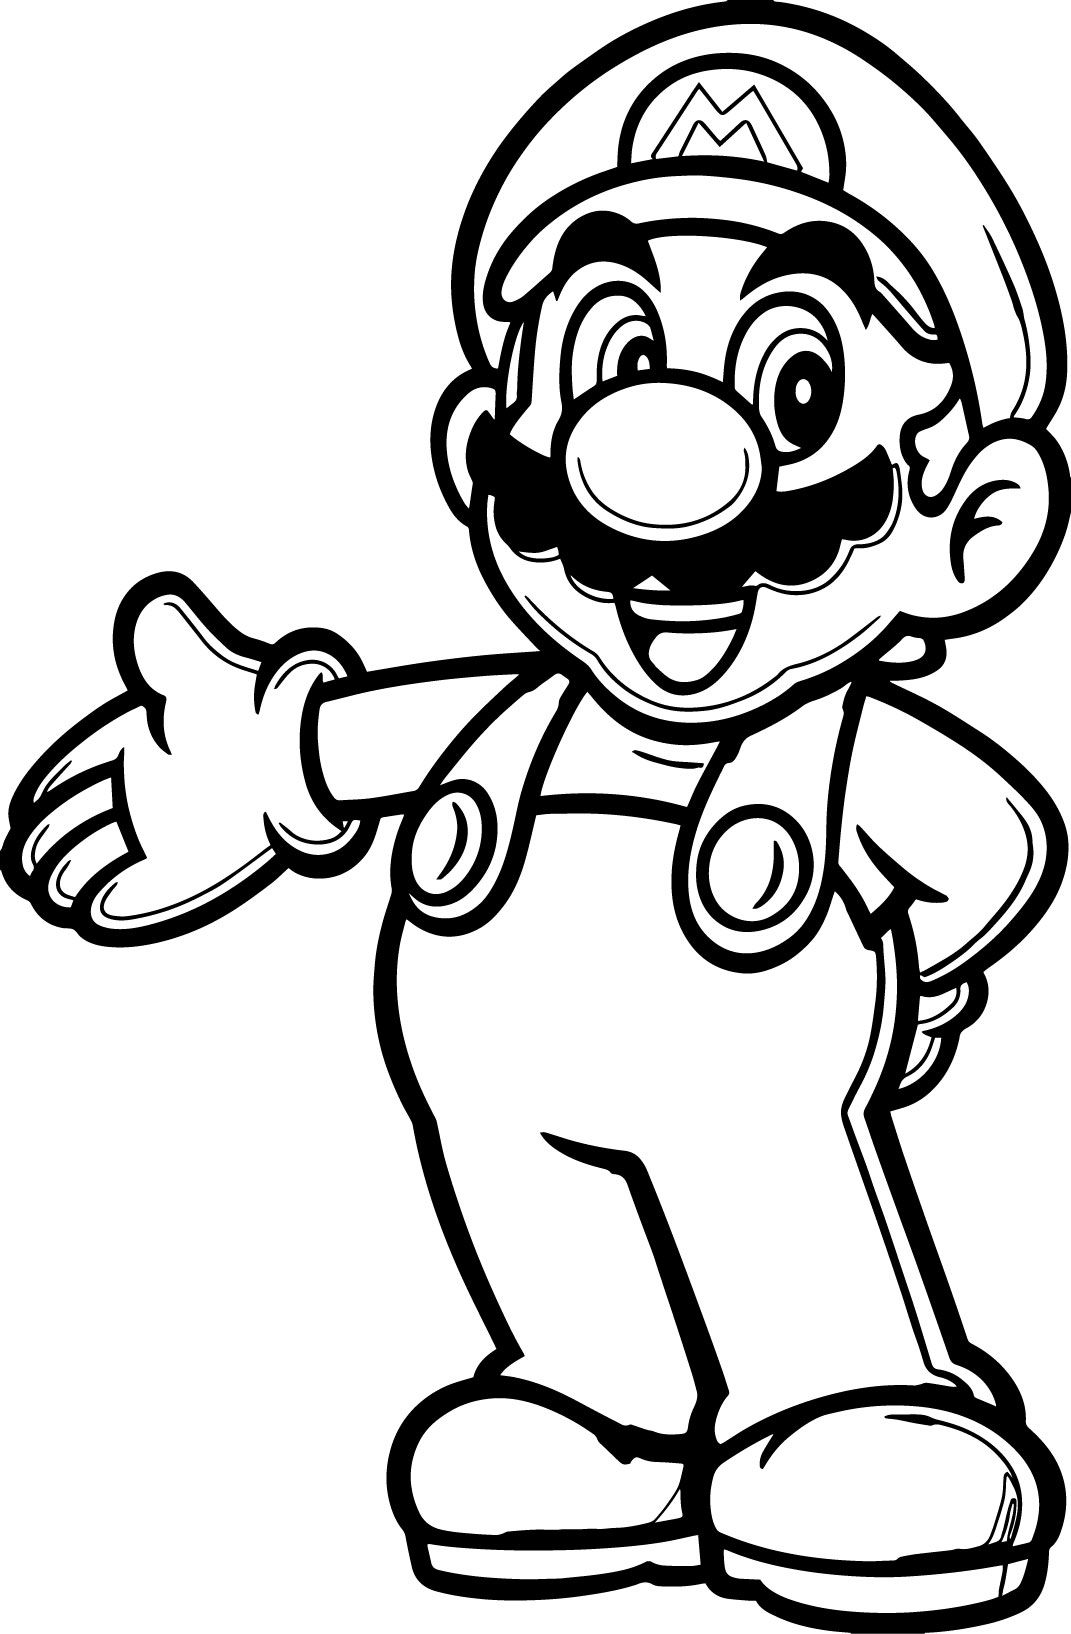 20 Populer Cartoon Coloring Pages Cakes Mario